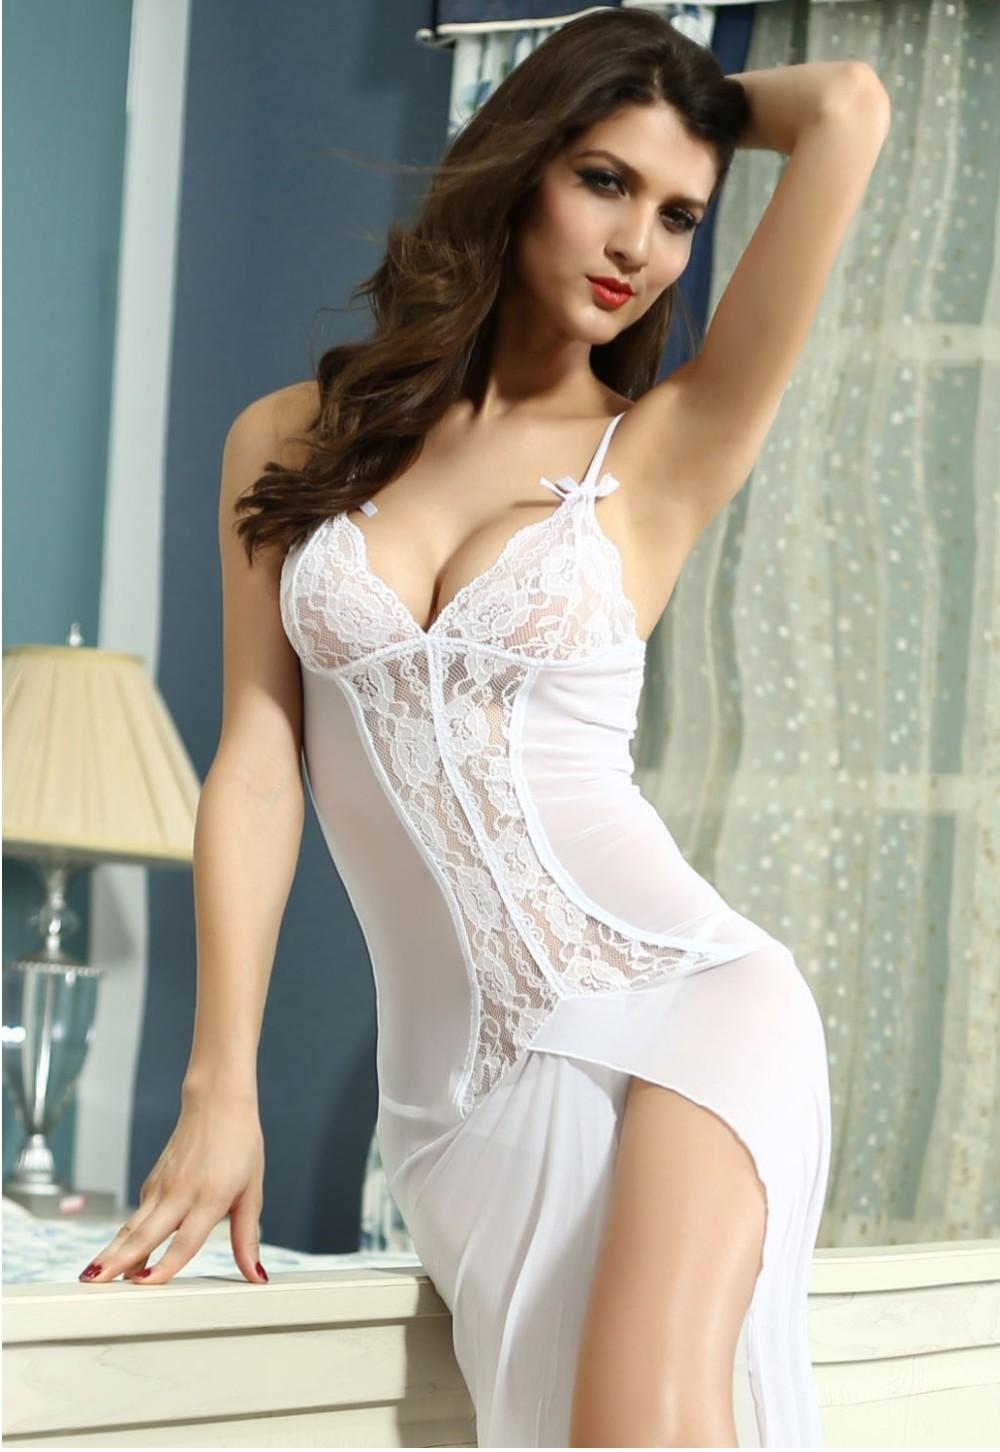 women clothing bride to be sleepwear gown lc6143 sleep dress sexy